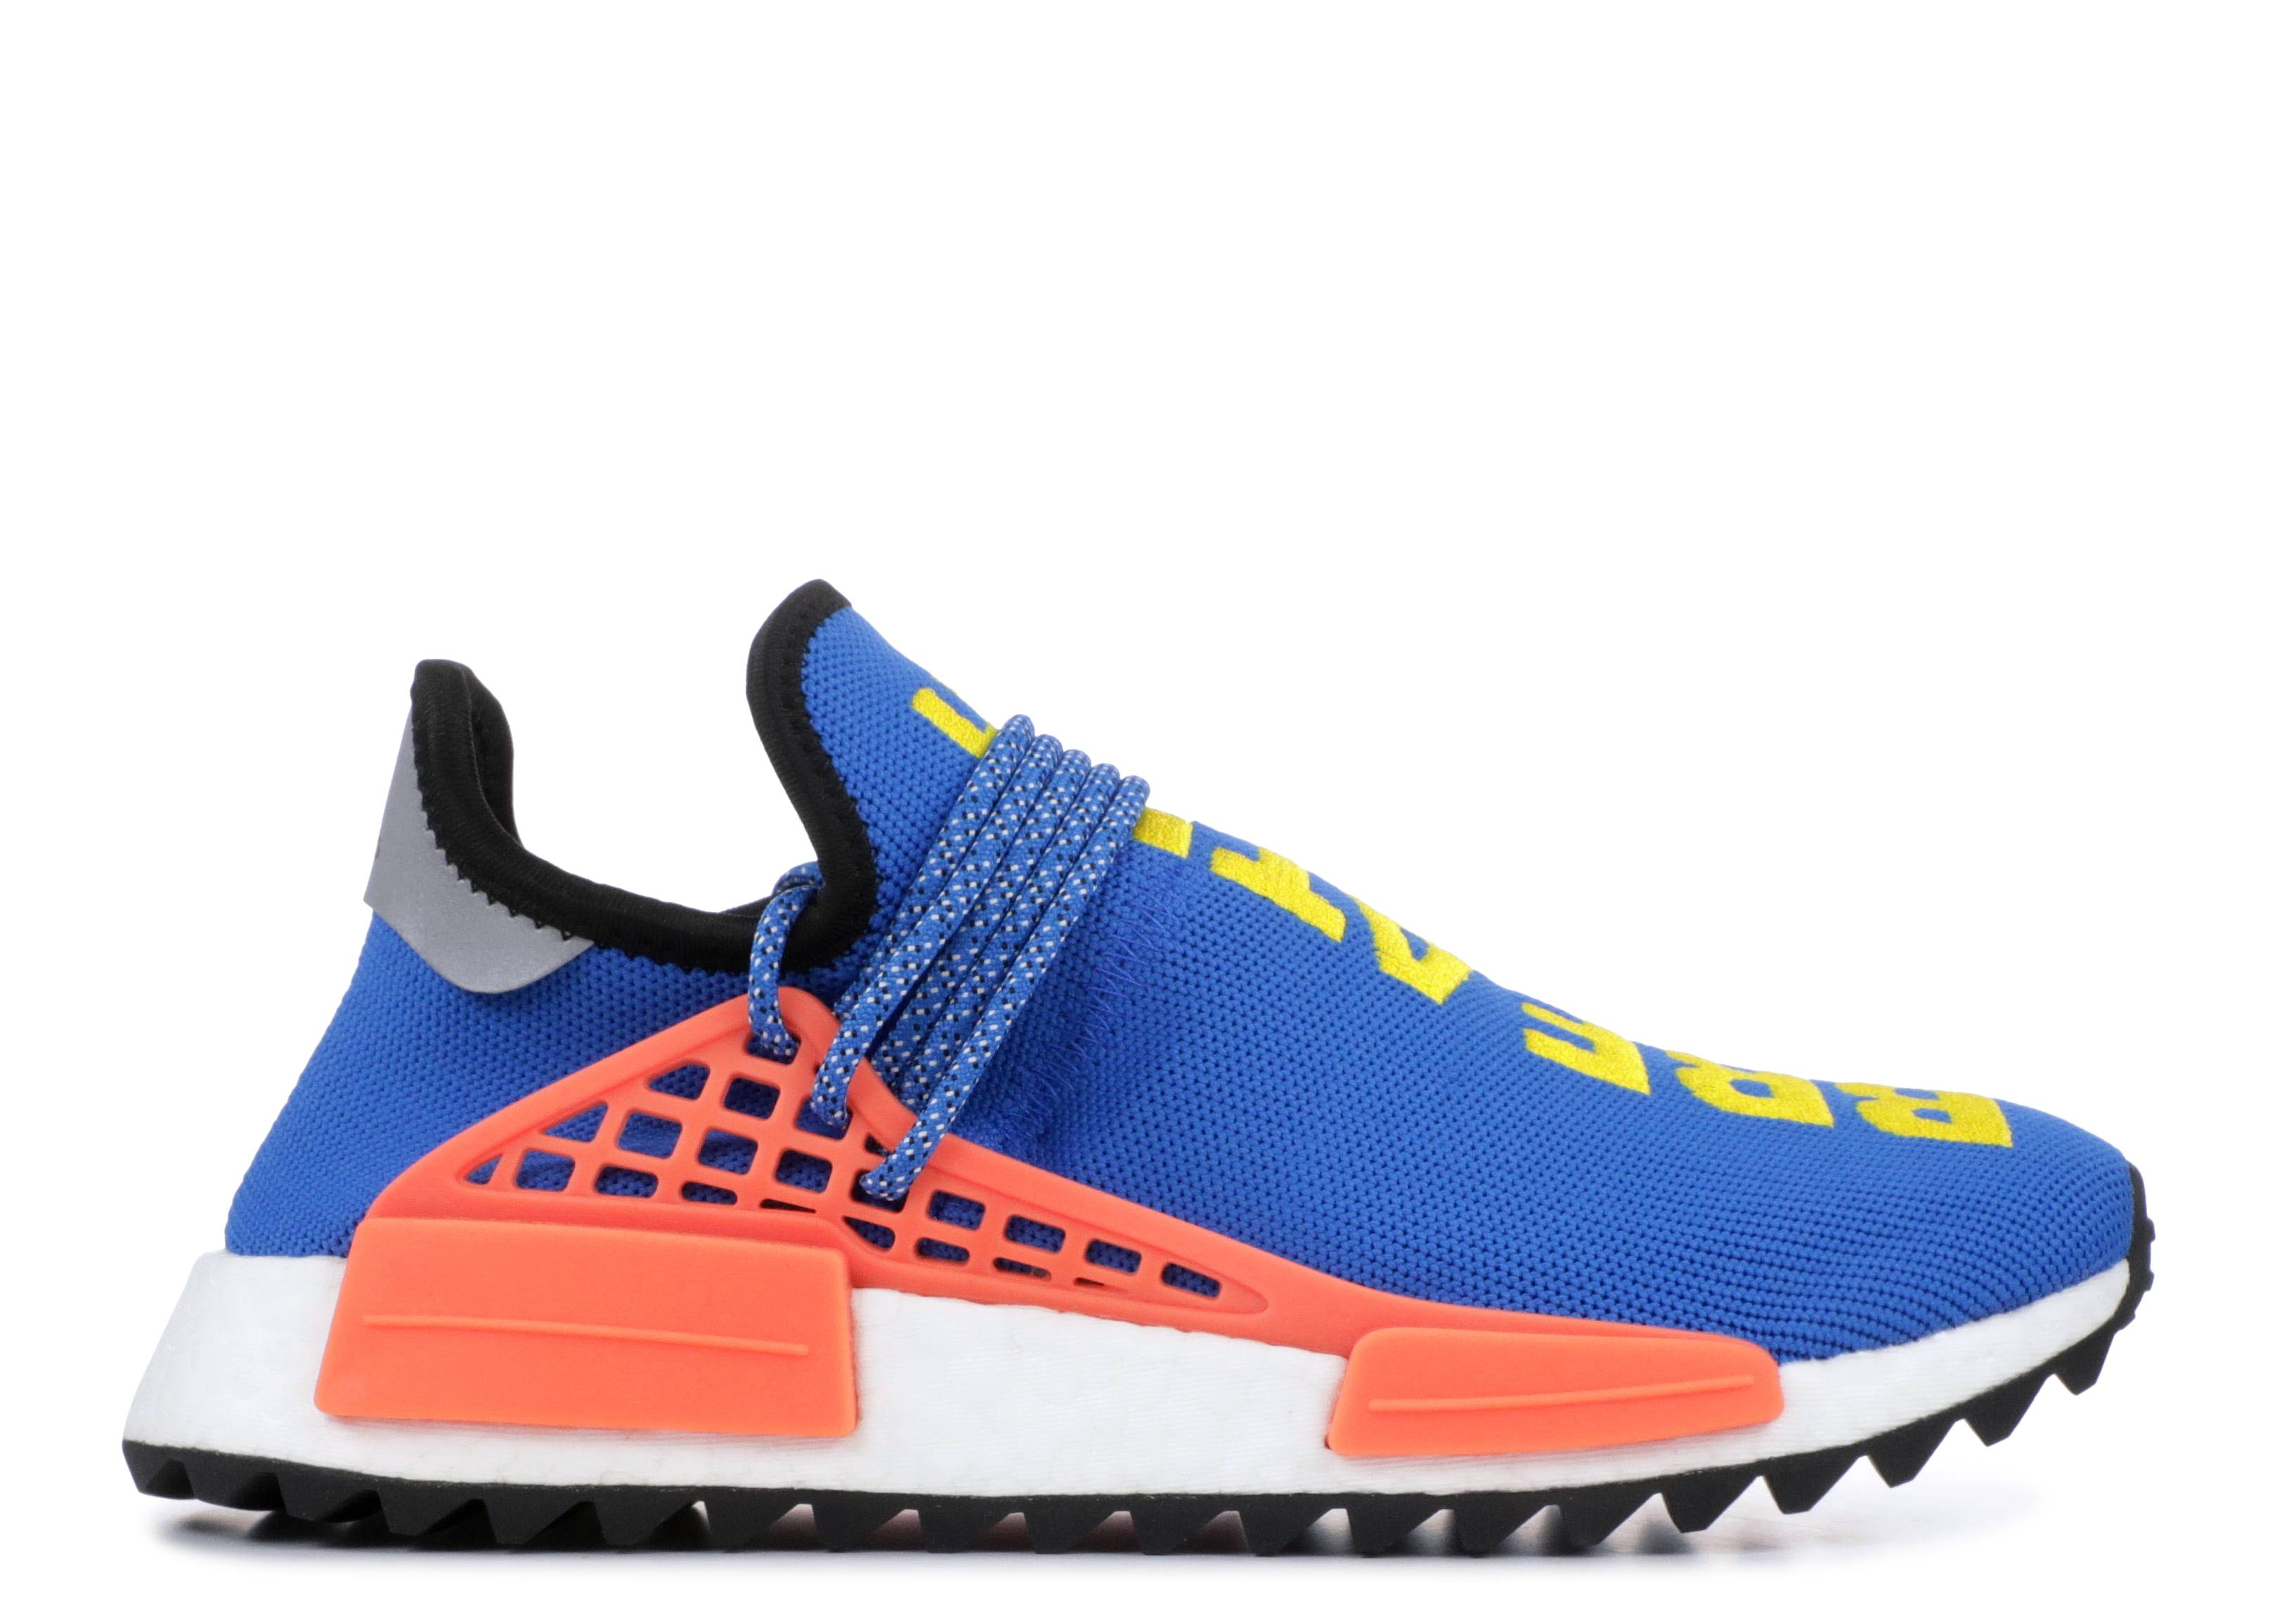 new style 8778b 59d3c Pw Human Race Nmd Tr